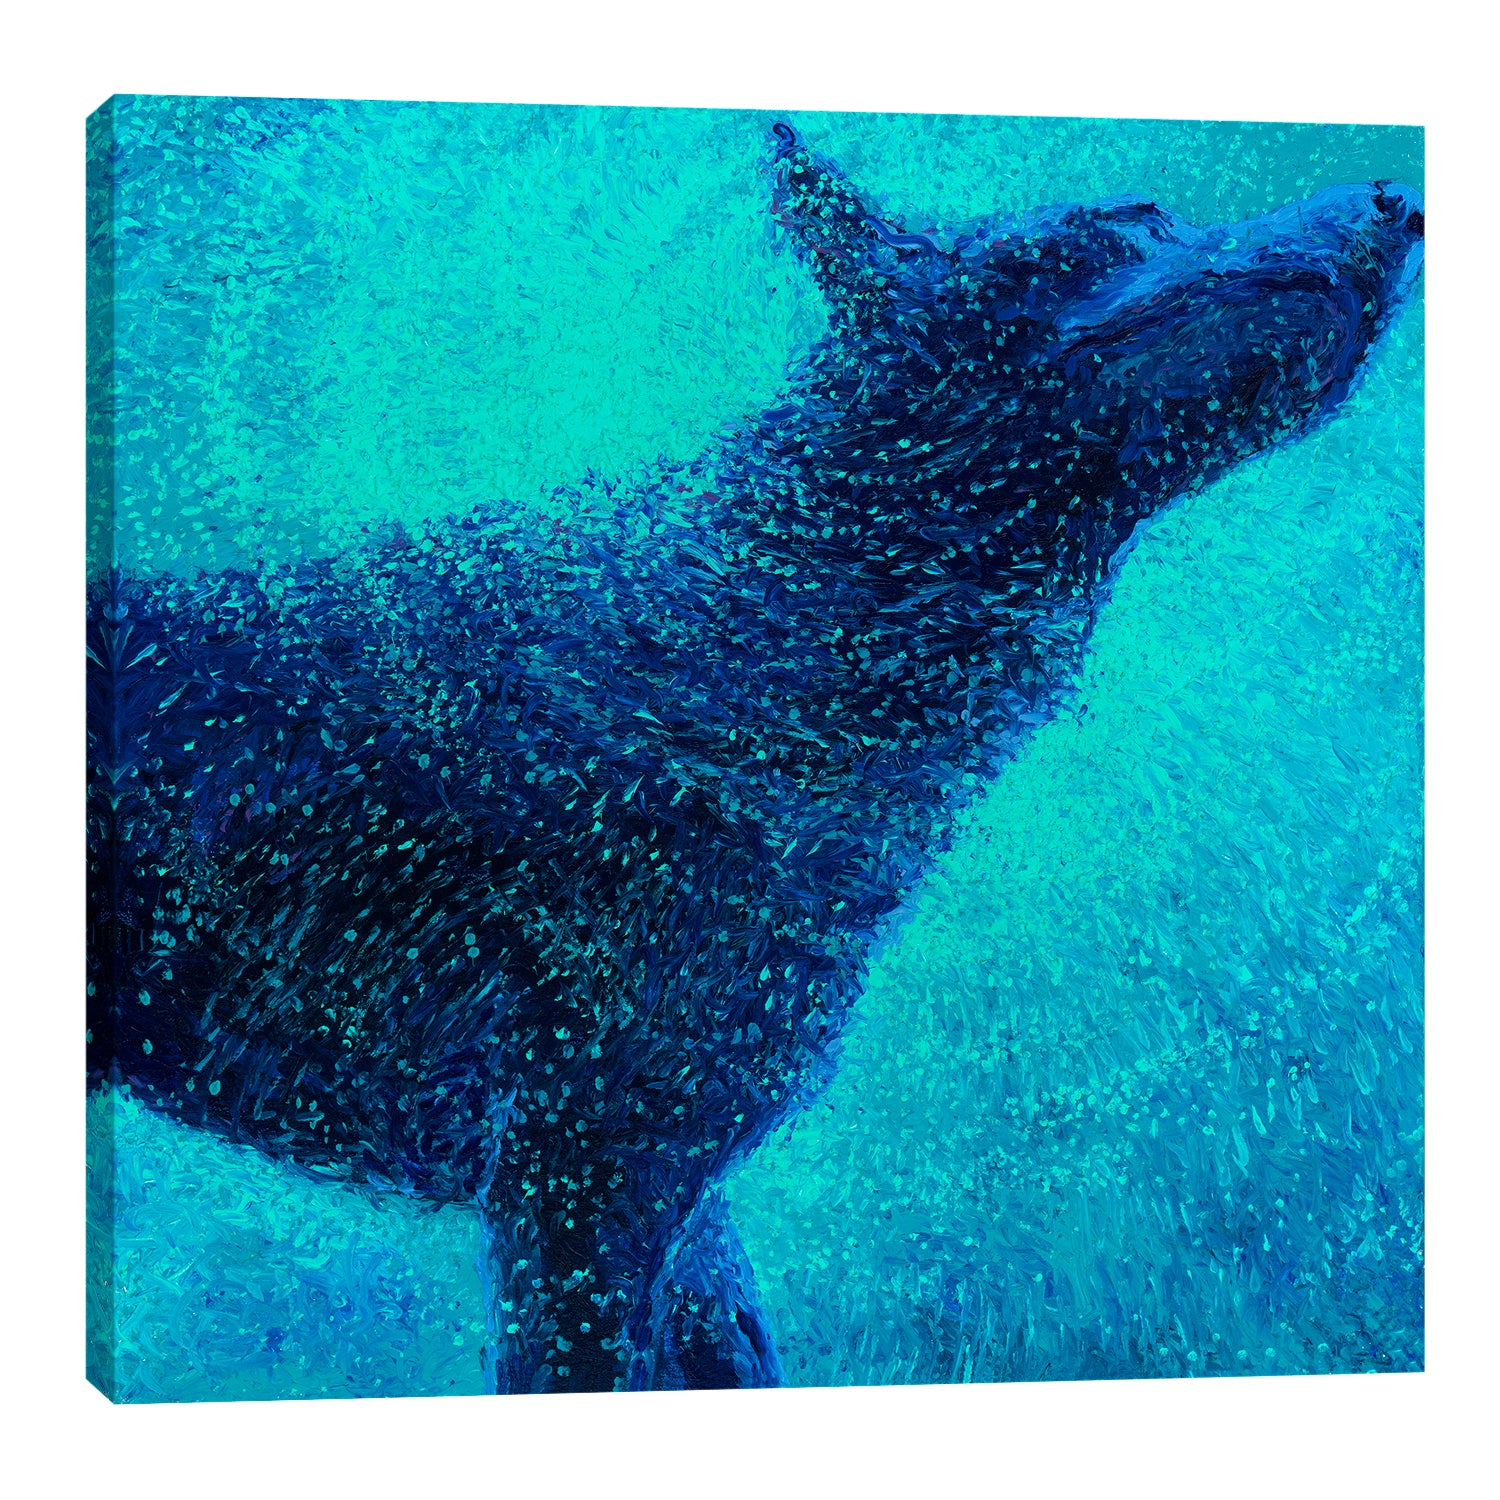 Iris-Scott,Modern & Contemporary,Animals,animals,animal,dogs,dog,wagging,shaking,water drops,blue,splatter,